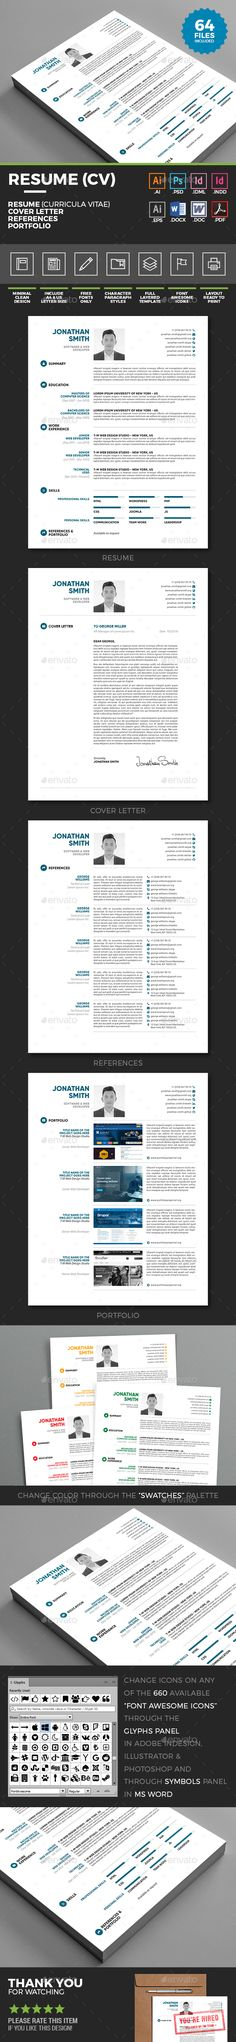 Resume Template PSD, Vector EPS, AI Illustrator, MS Word Resume - office 2010 resume template